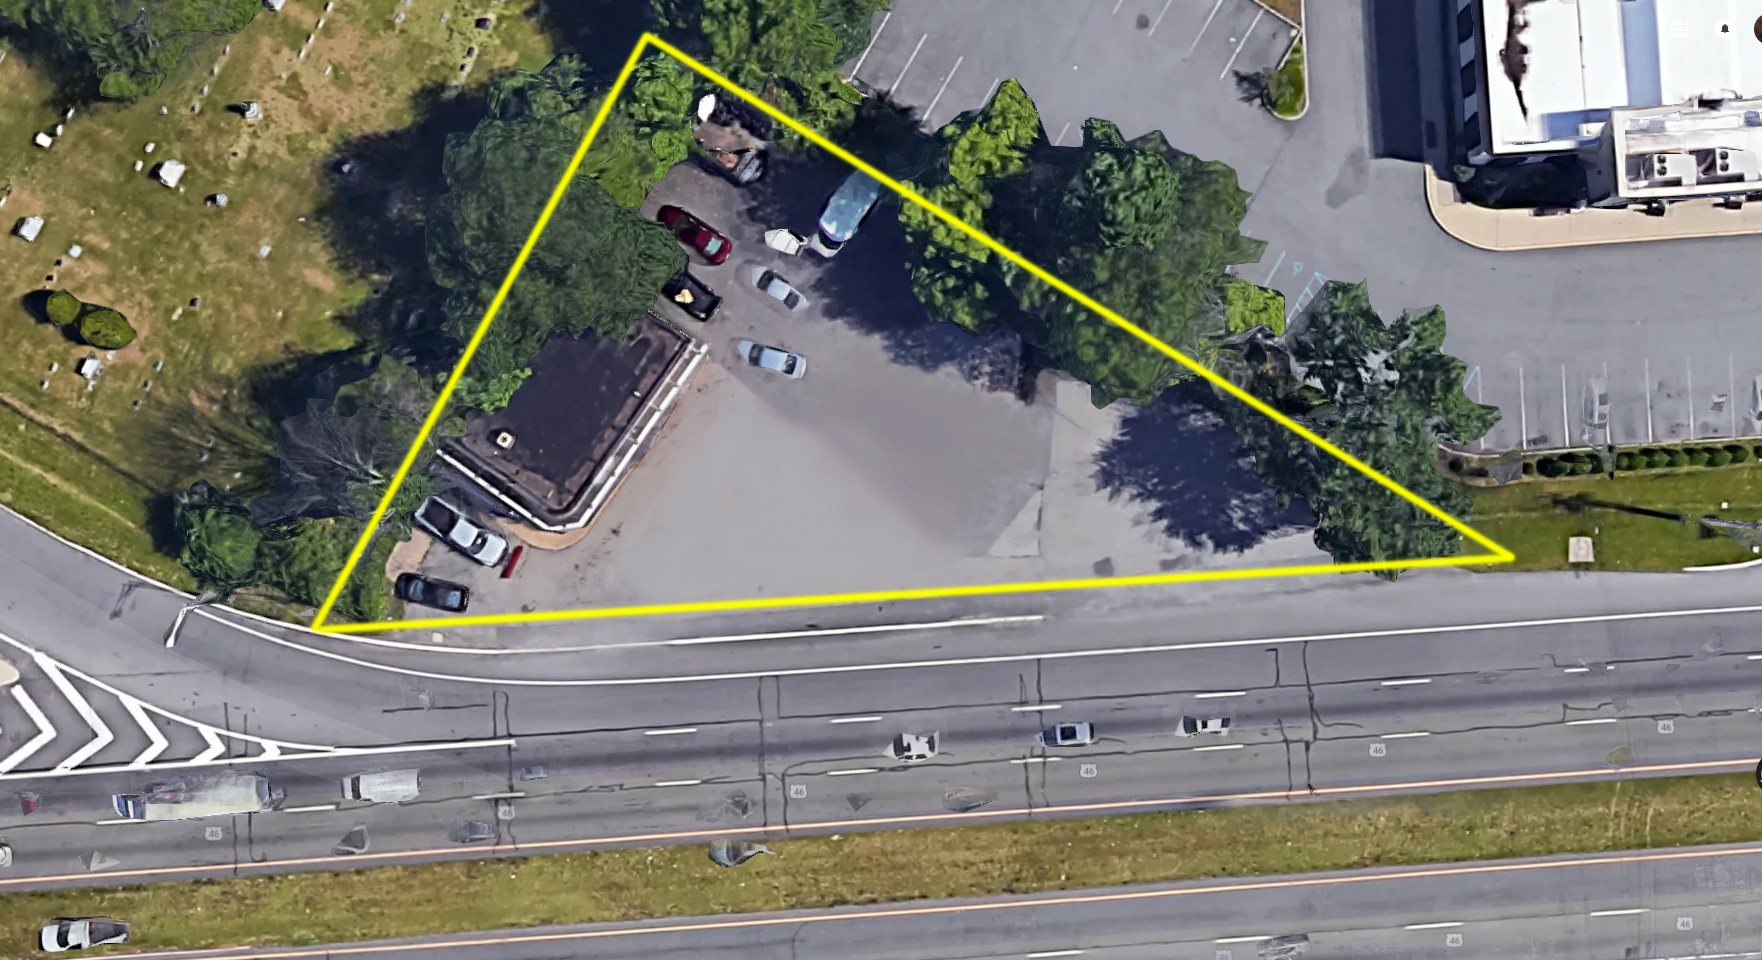 Land For Sale Or Lease | 26 Route 46 Montville, NJ 07058